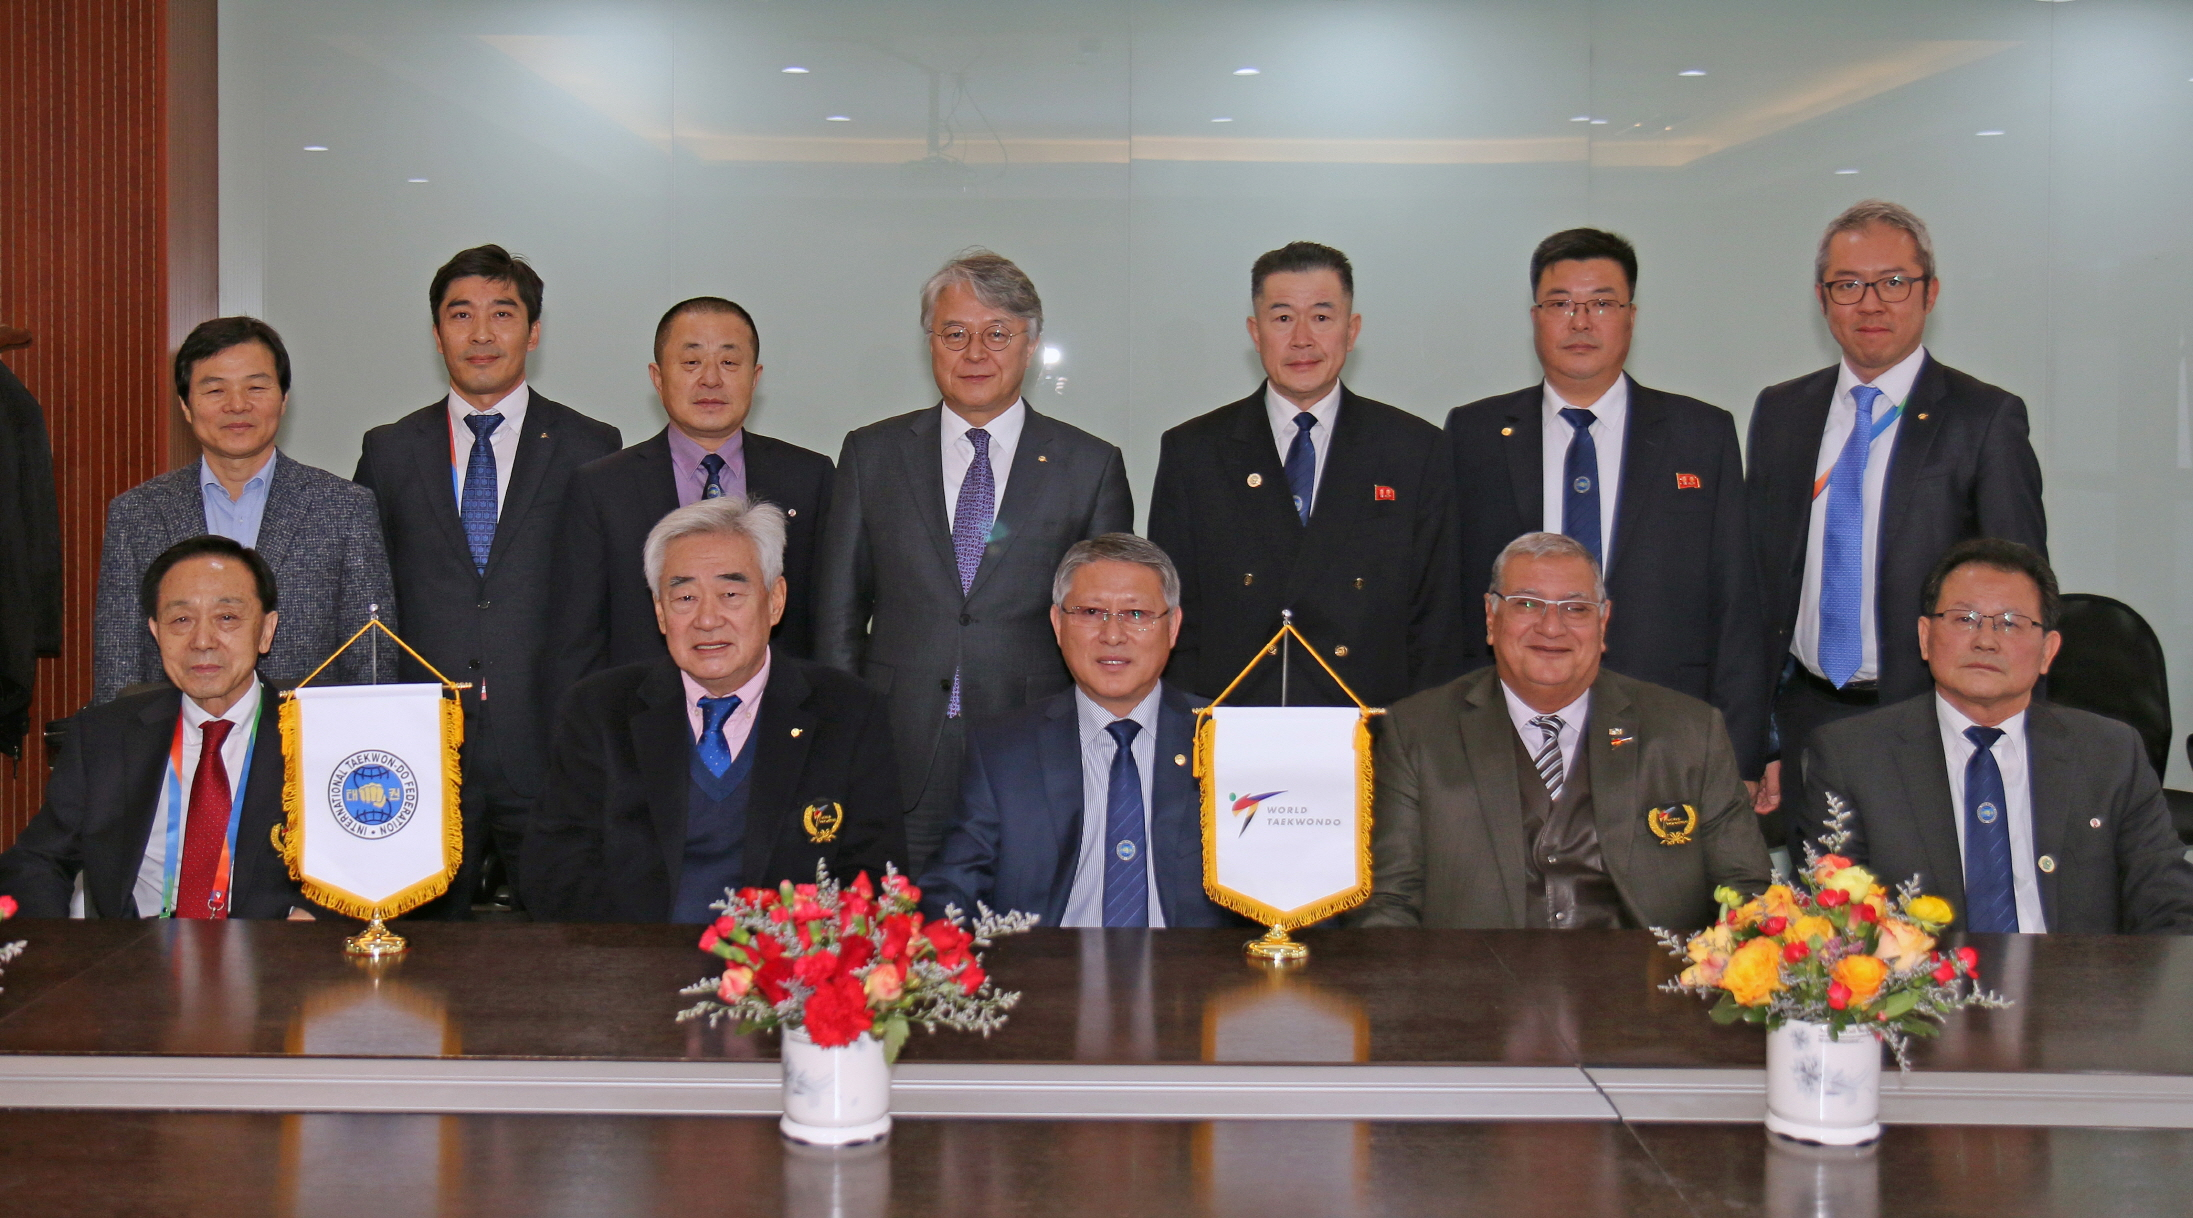 WT President Chungwon Choue (first row 2nd to left) and ITF President Yong Son Ri (first row 3rd to left) posing after WT-ITF meeting at Wuxi,China